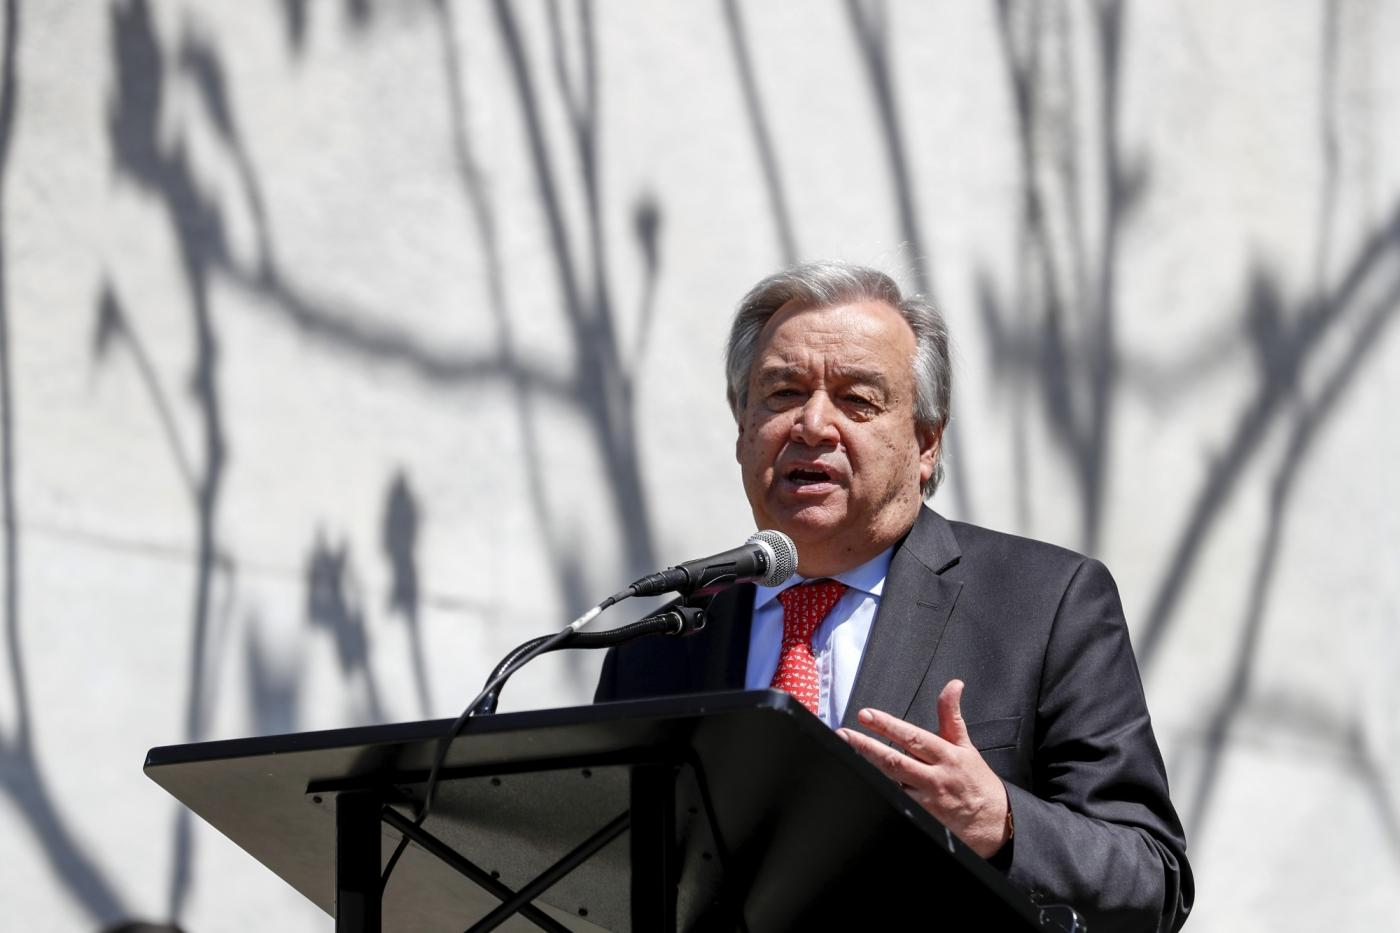 UNITED NATIONS, May 2, 2018 (Xinhua) -- United Nations Secretary-General Antonio Guterres speaks during Labor Day celebration, at the UN headquarters in New York, May 1, 2018. (Xinhua/Li Muzi/IANS) by .